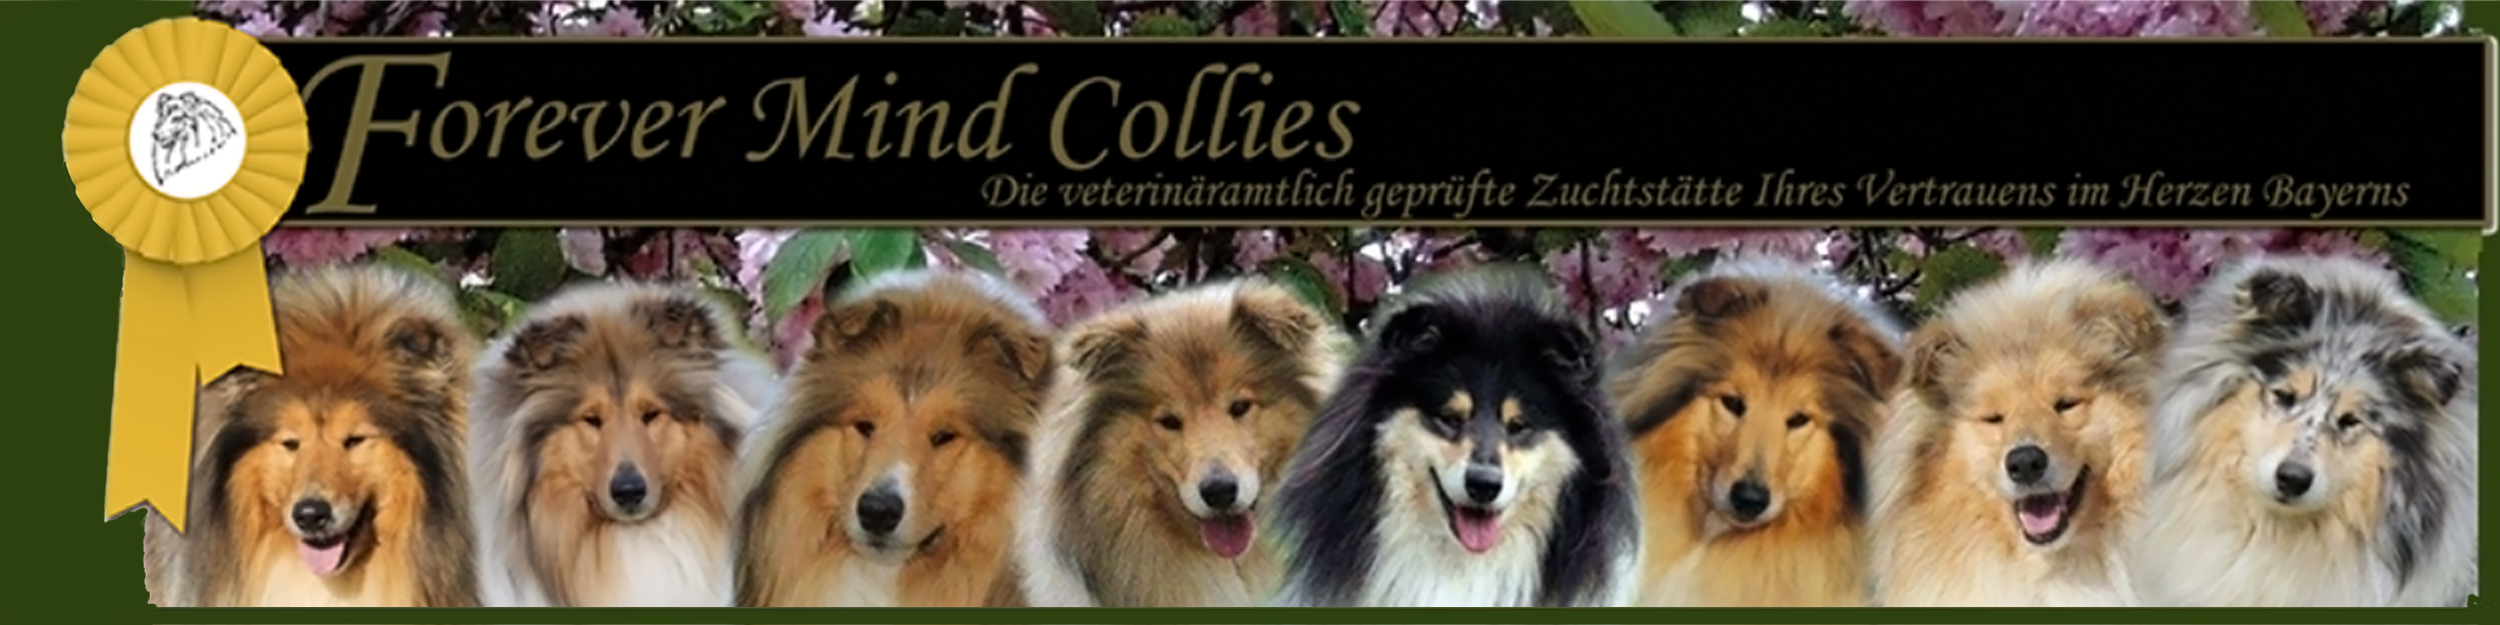 Forever Mind Collies